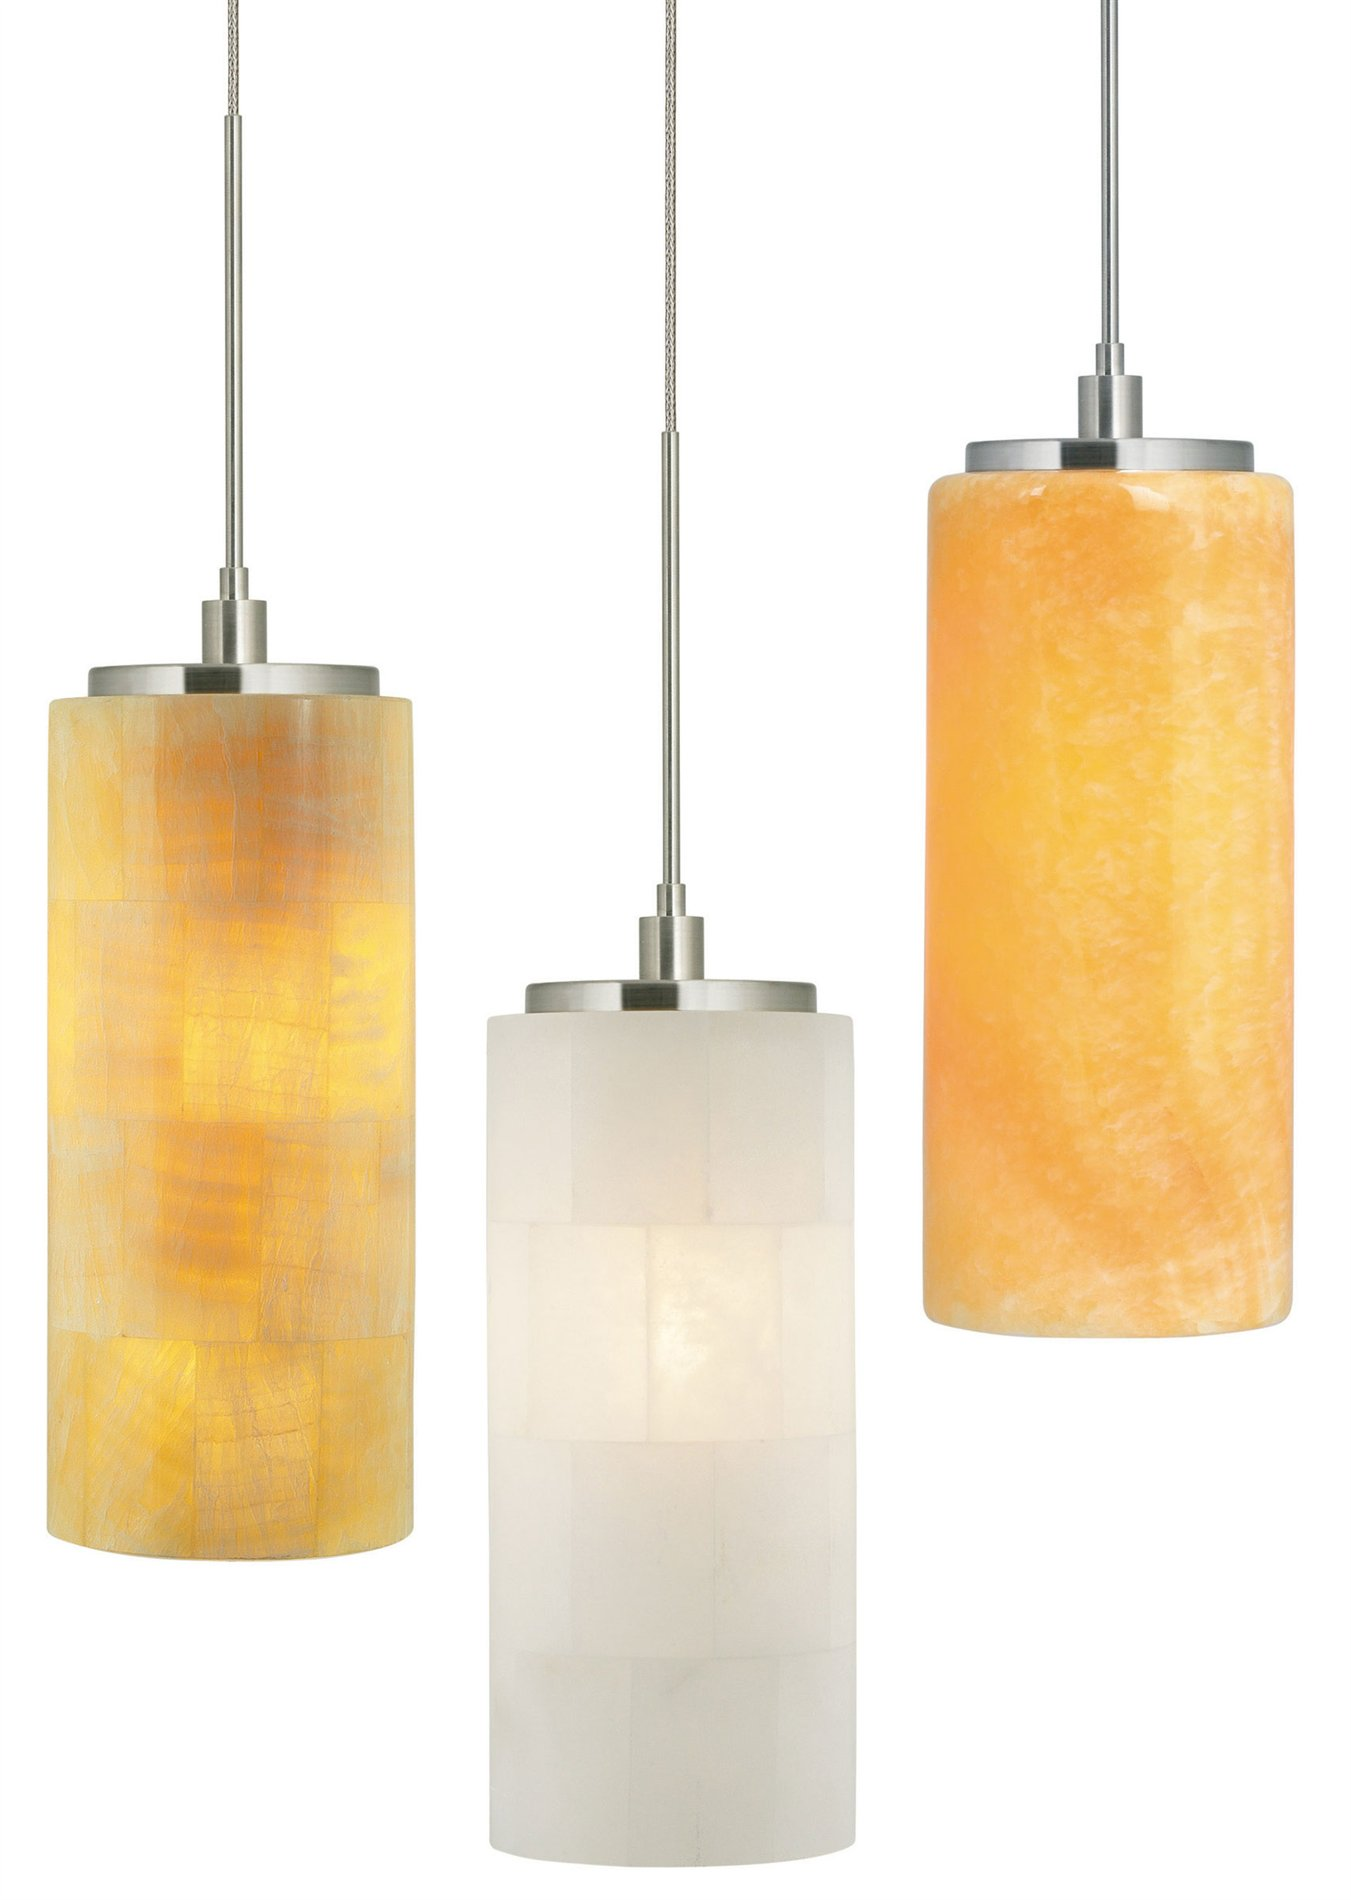 fabric lights pendant westmore canada larger s lowe view light large cylinder lighting